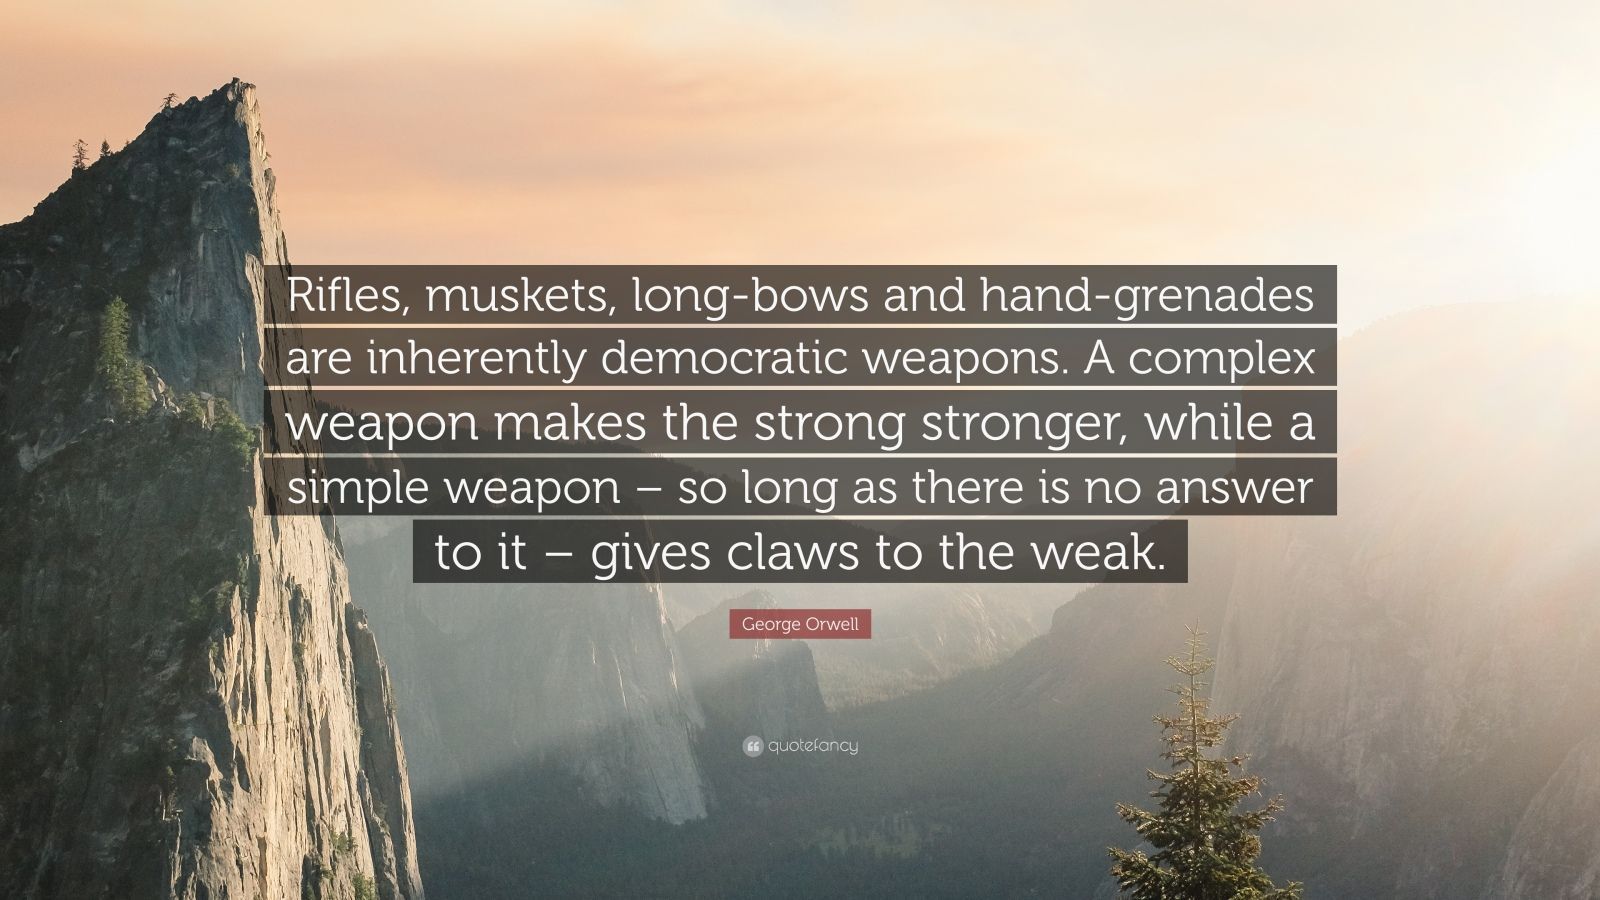 Rifles, muskets, long-bows and hand-grenades are inherently democratic weapons. A complex weapon makes the strong stronger, while a simple weapon – so long as there is no answer to it – gives claws to the weak. – George Orwell [1600×900]